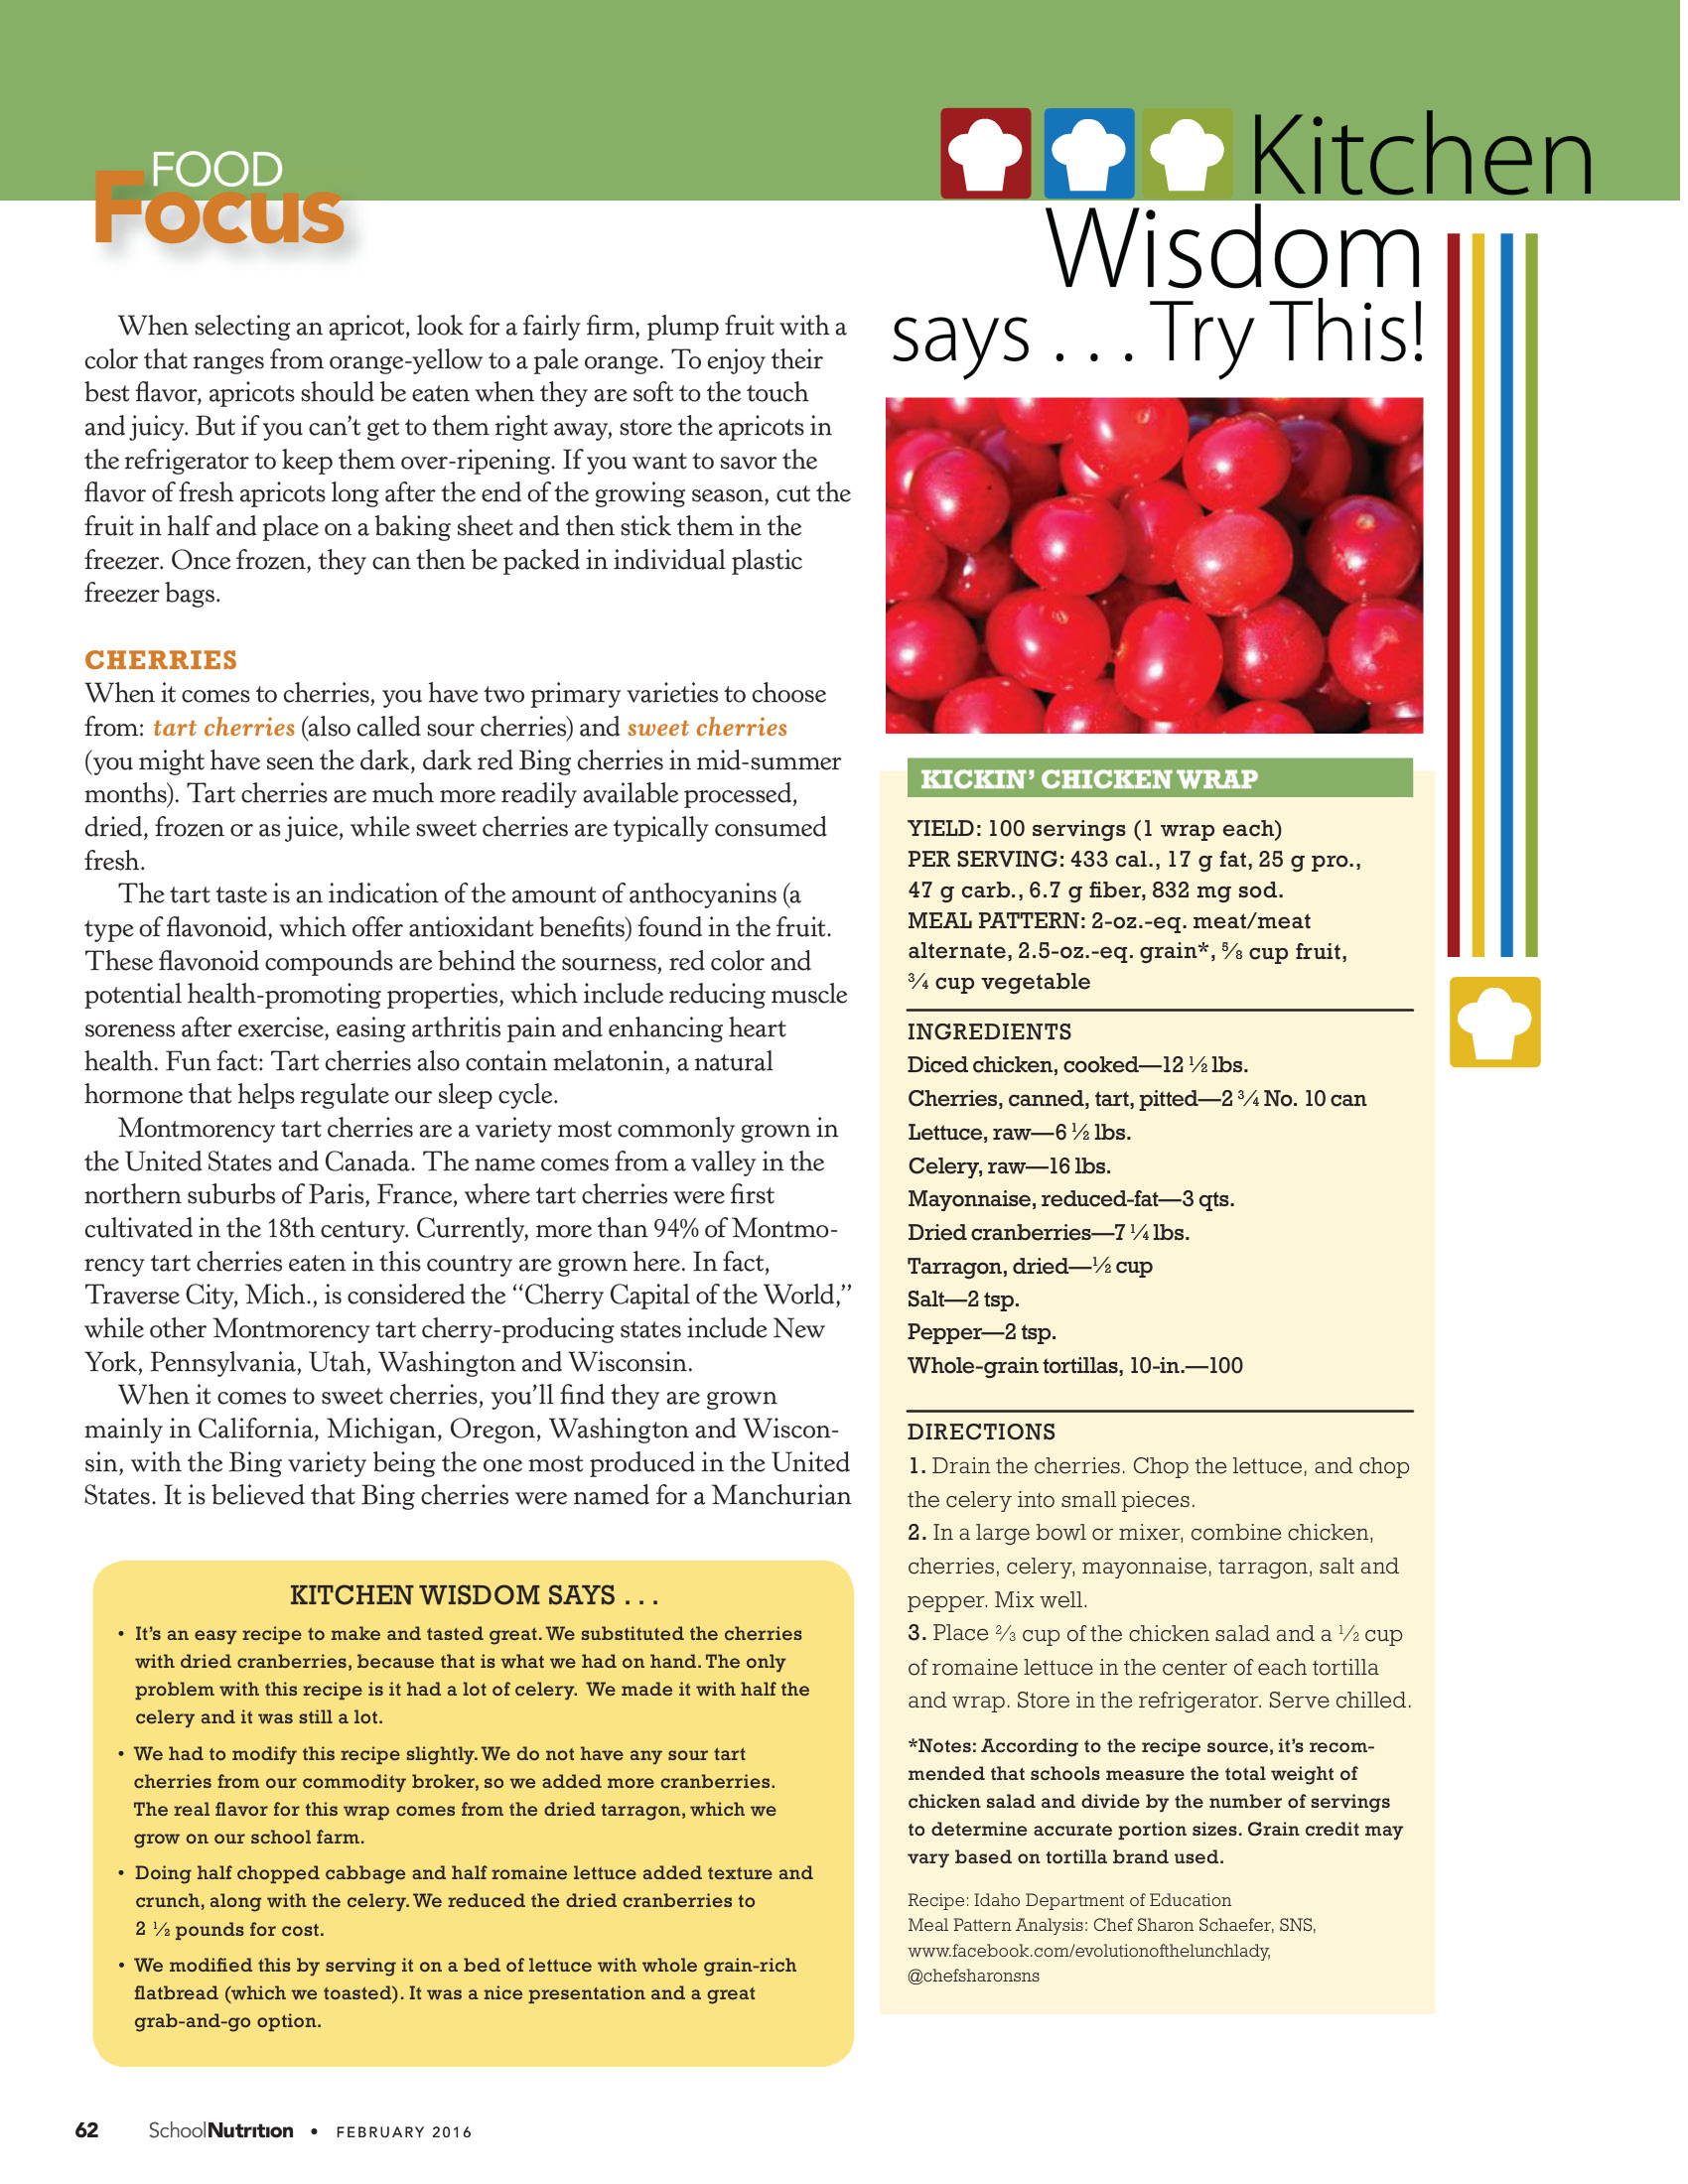 school-nutrition-association-february-2016_page_3